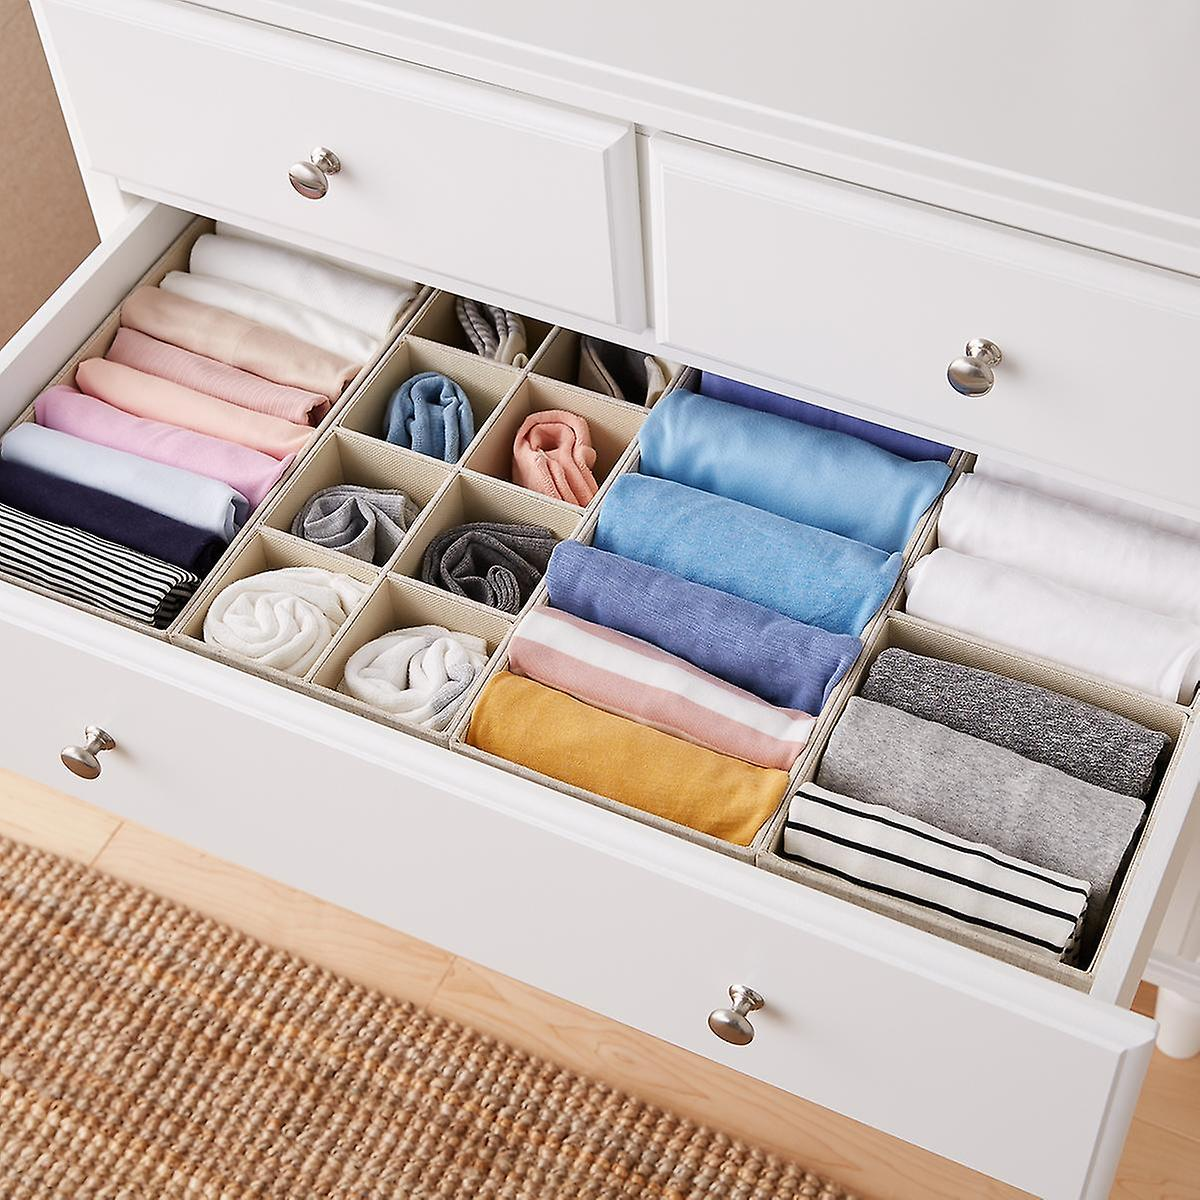 28 x 14 Linen Drawer Organization Starter Kit